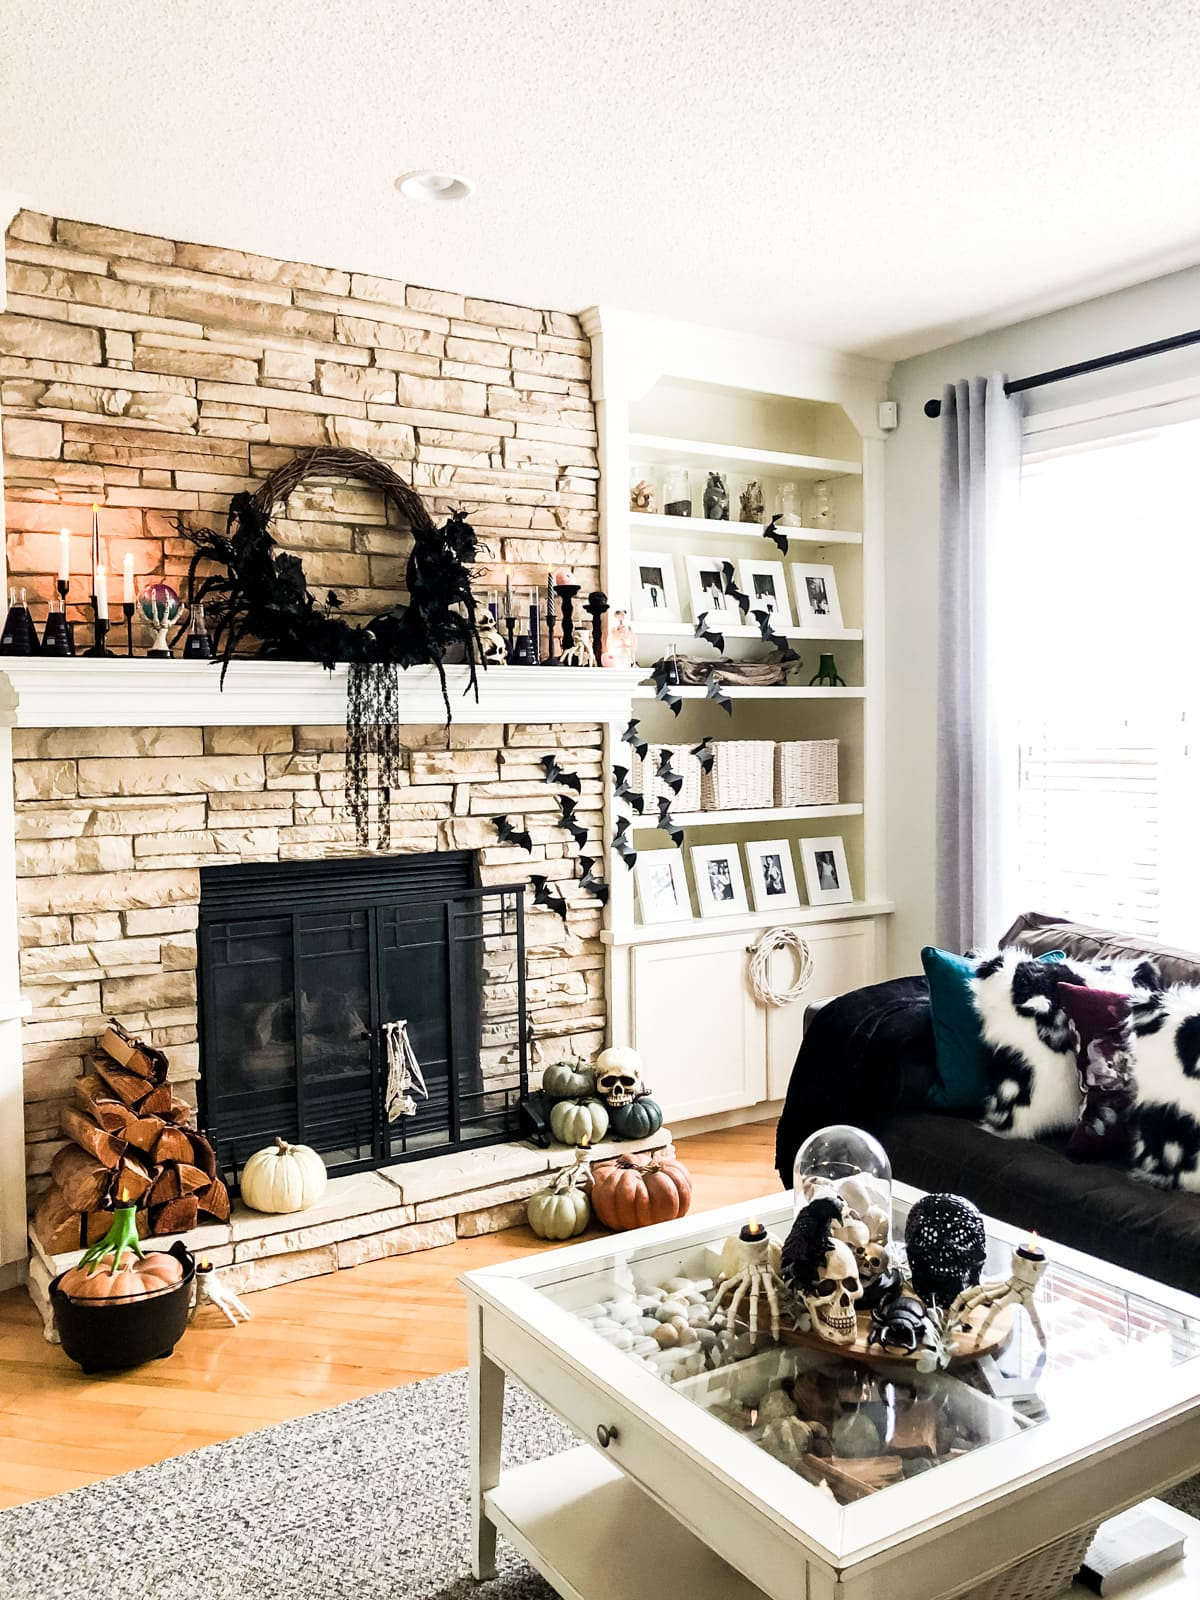 A living room decorated for Halloween with a wreath, plastic bats, pumpkins and skulls